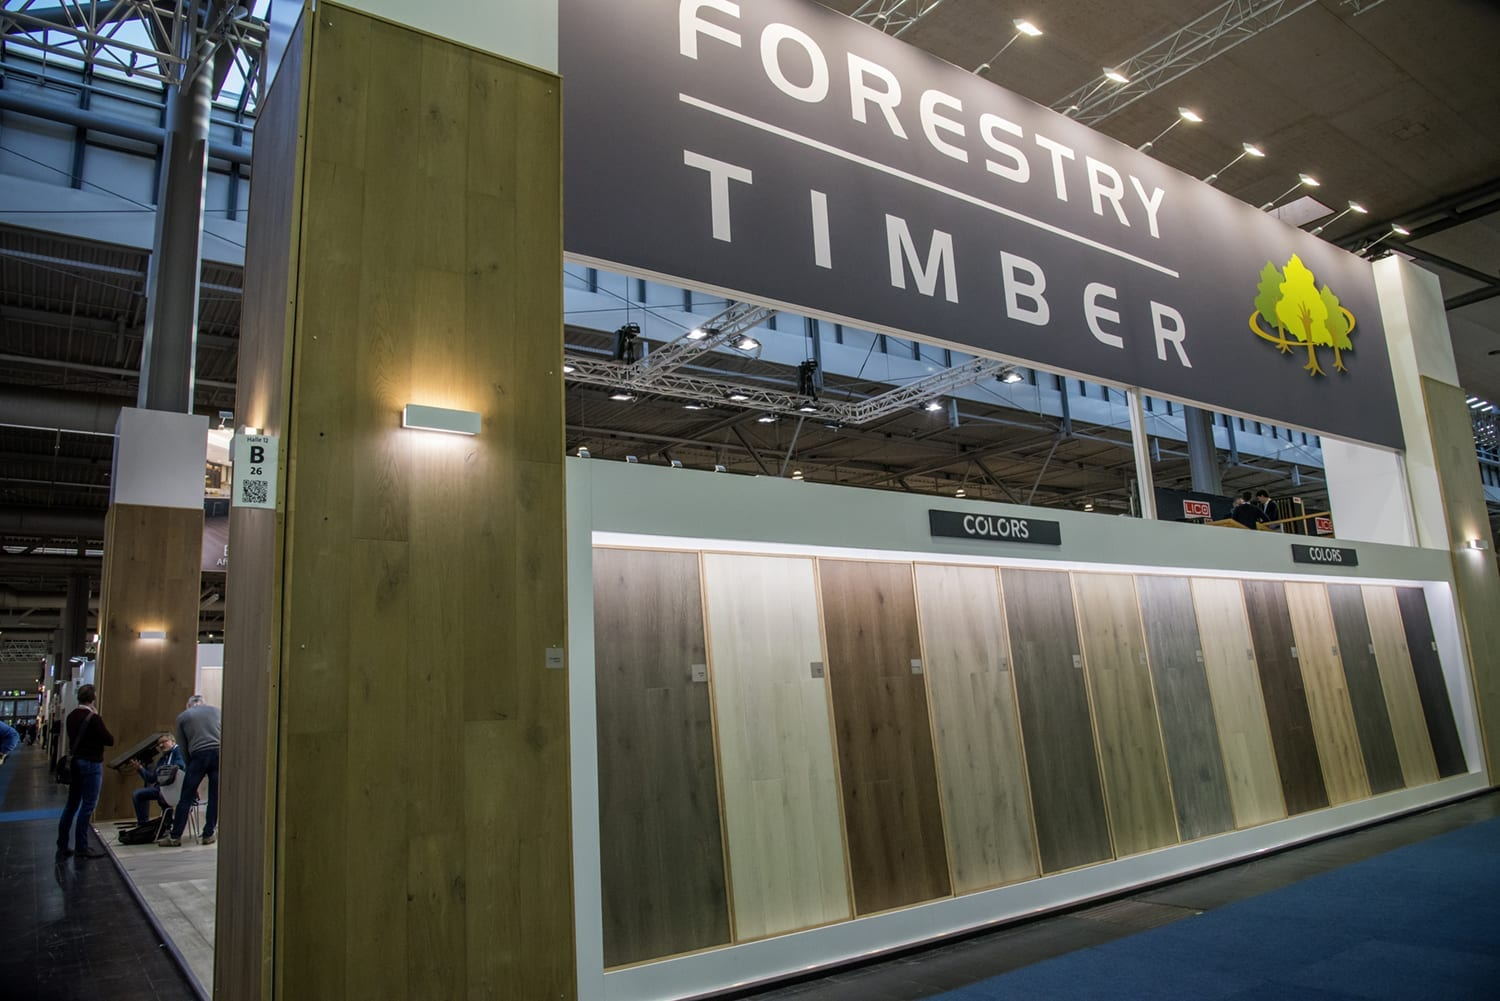 Domotex Exhitibiton Hannover 2019-Forestry Timber-40